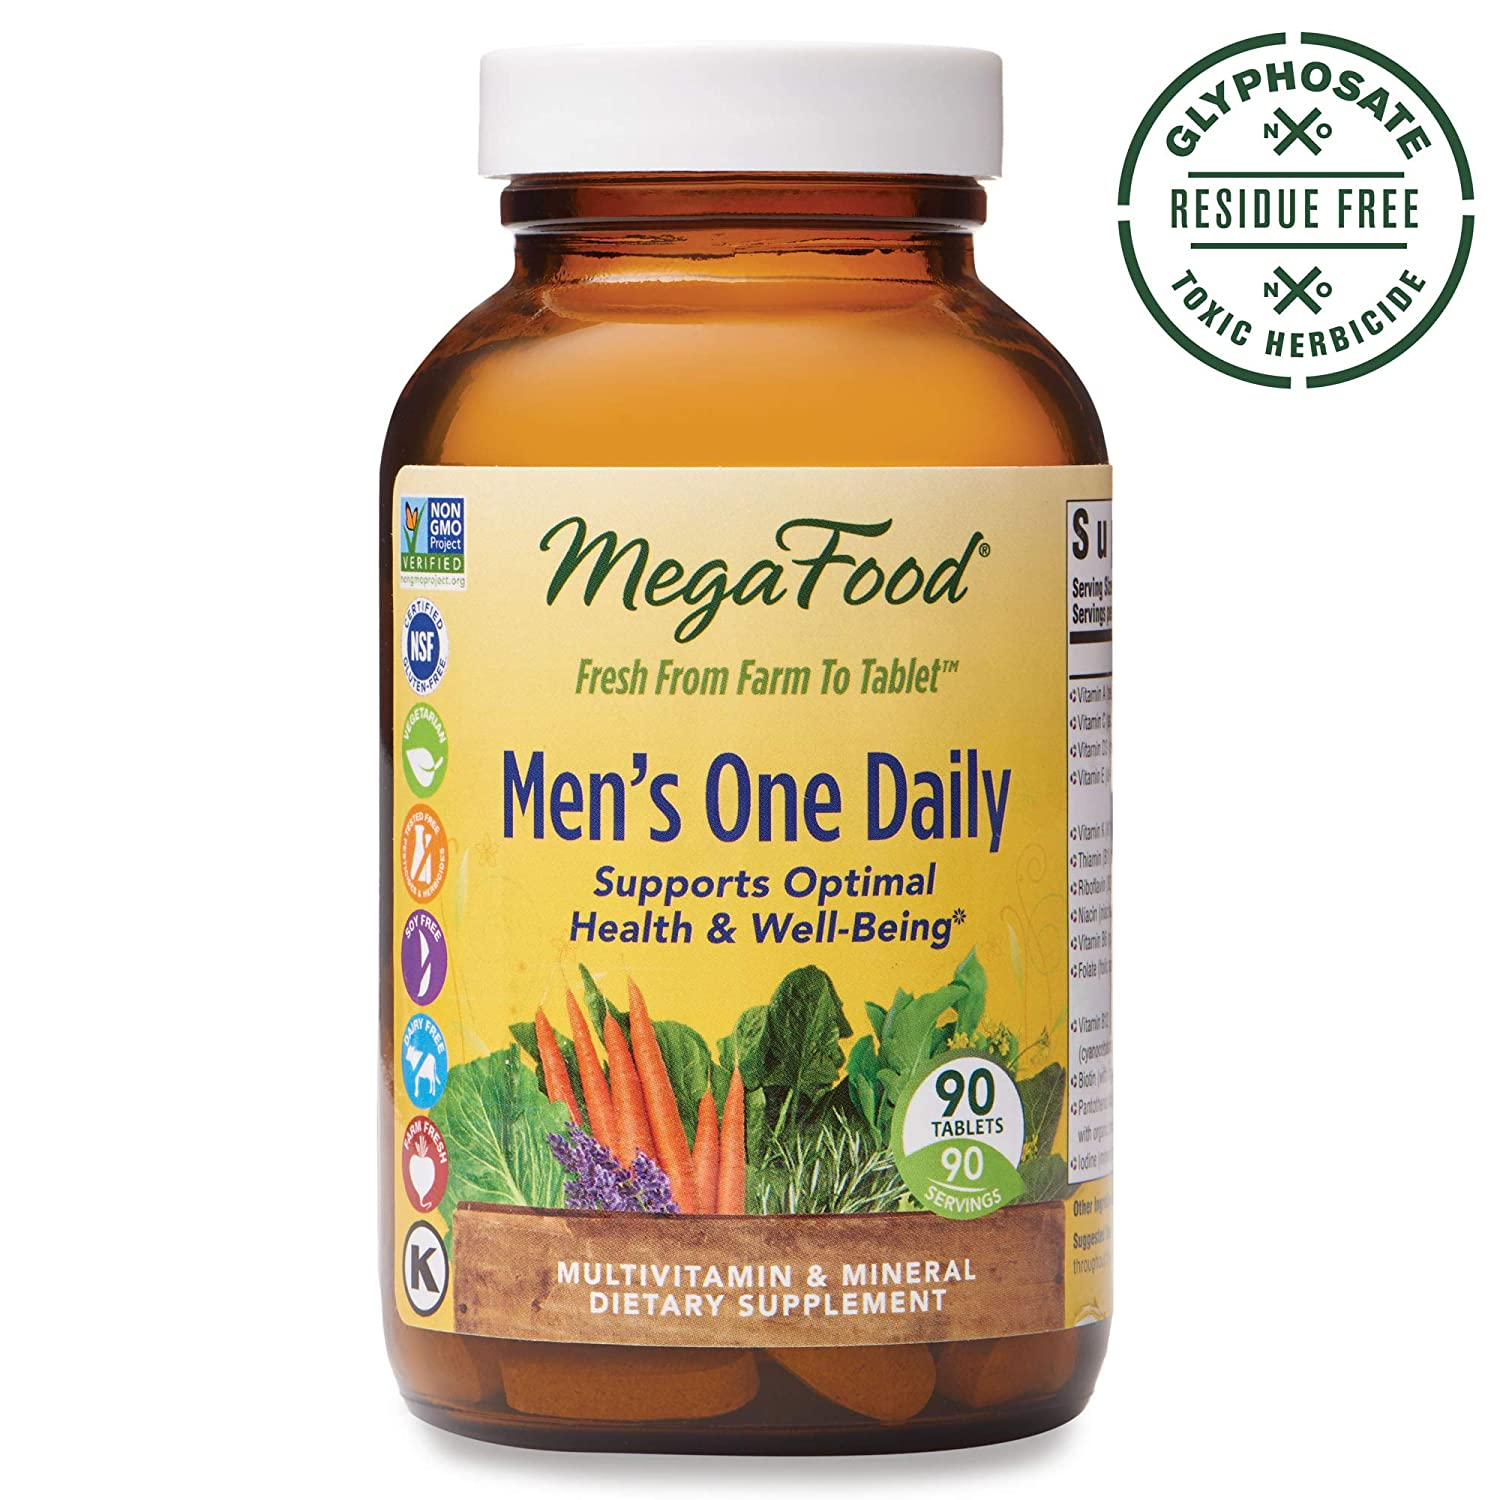 MegaFood, Men s One Daily, Daily Multivitamin and Mineral Dietary Supplement with Vitamins B, D and Zinc, Non-GMO, Vegetarian, 90 Tablets 90 Servings FFP